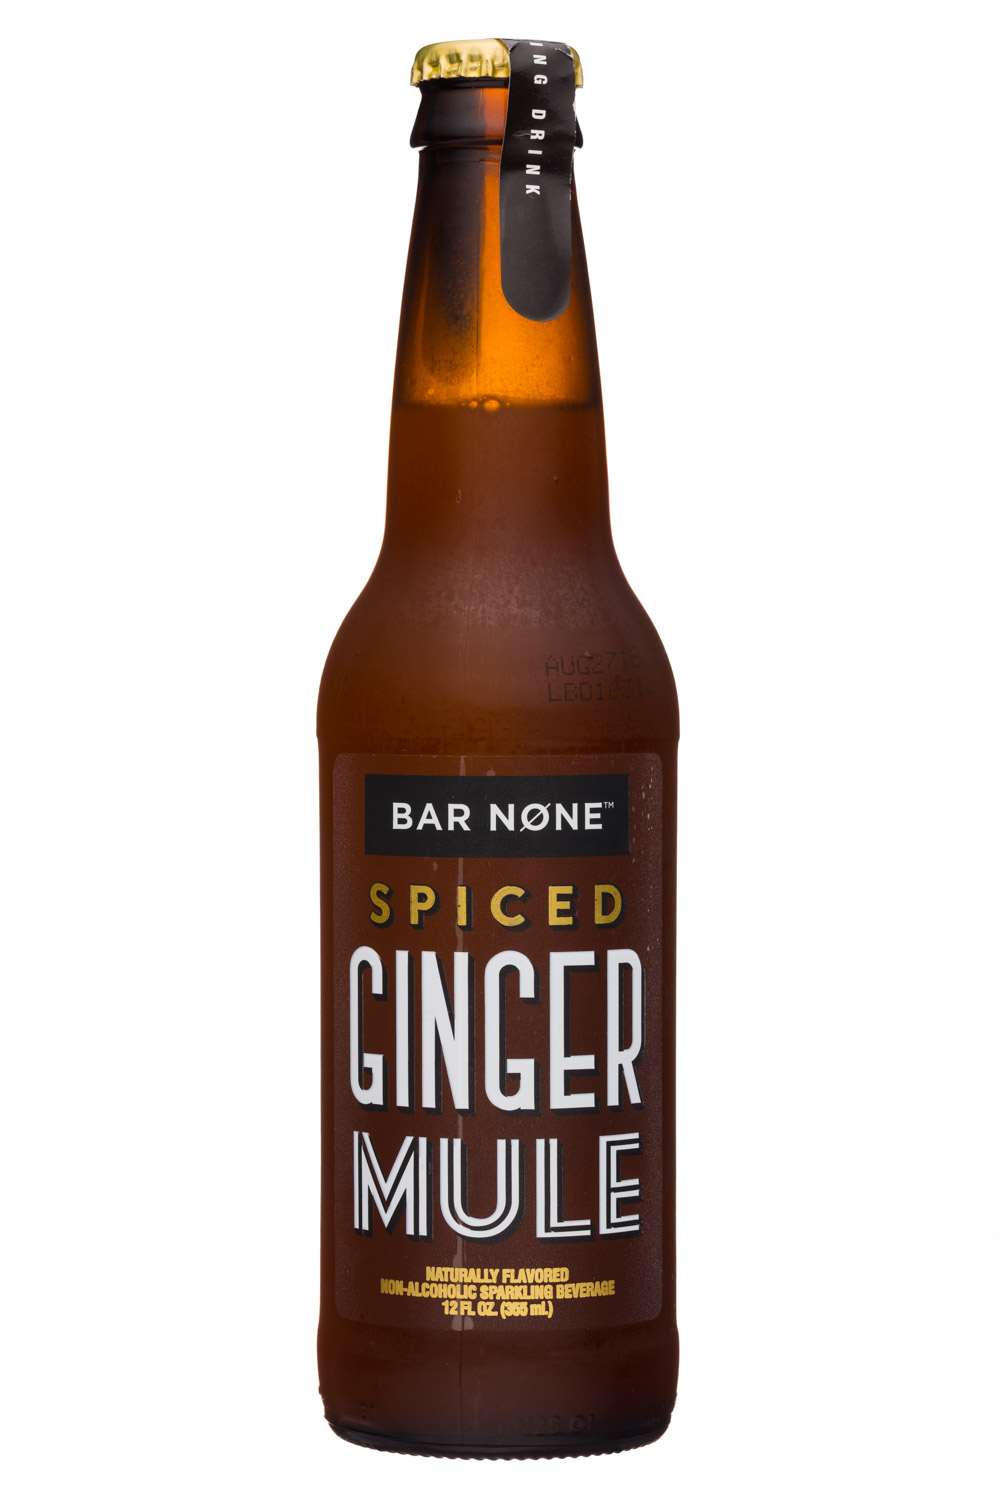 Spiced Ginger Mule